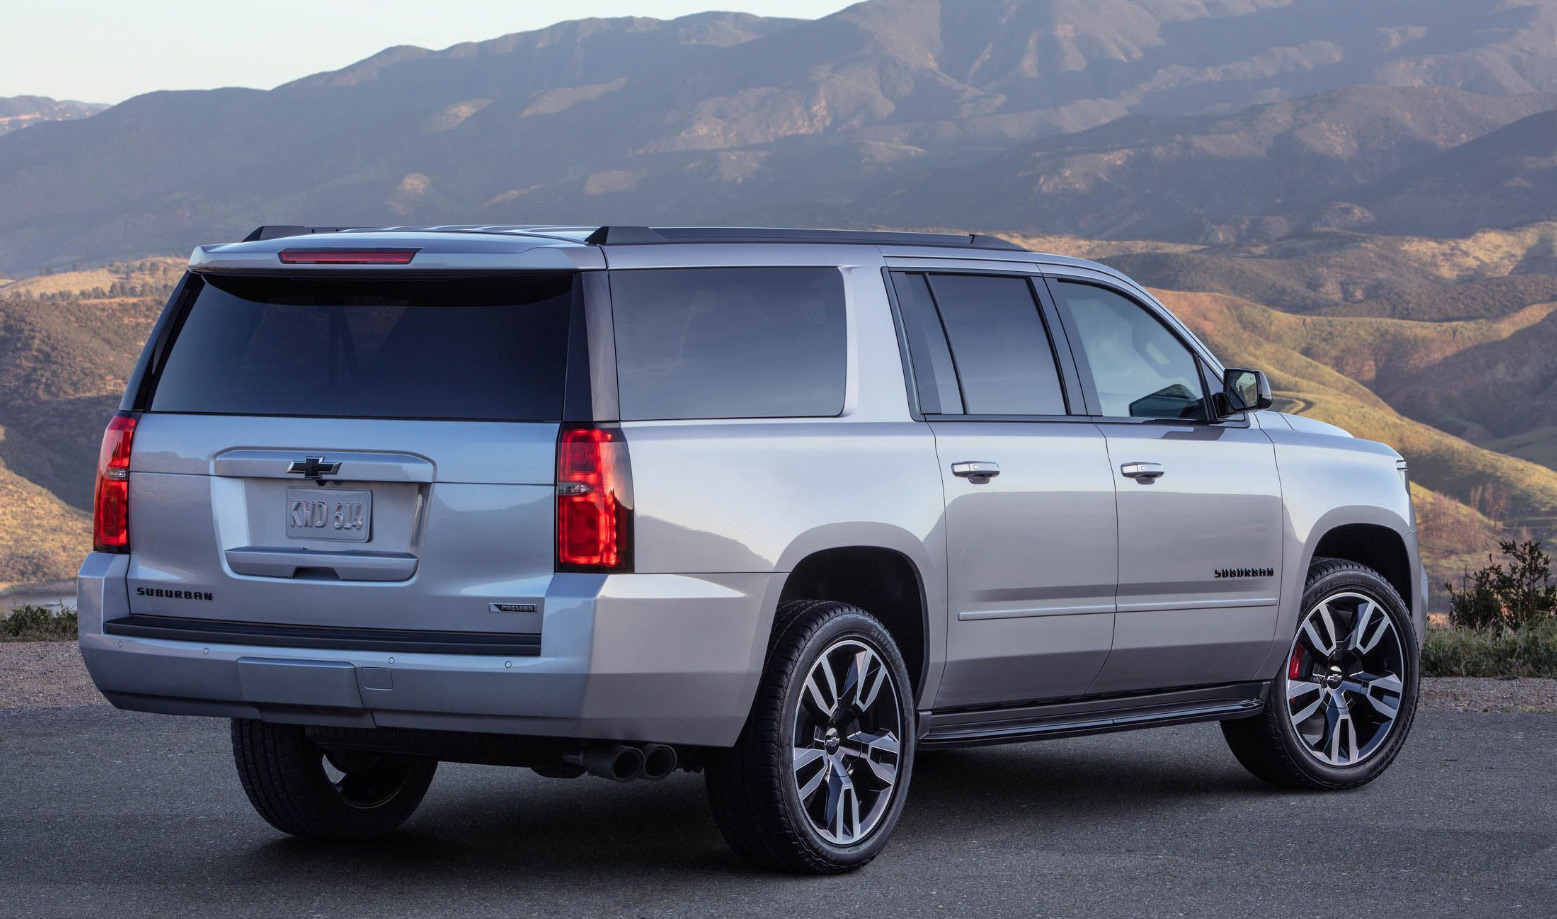 2019 Chevrolet Suburban RST Pictures & Price | Valley Chevy